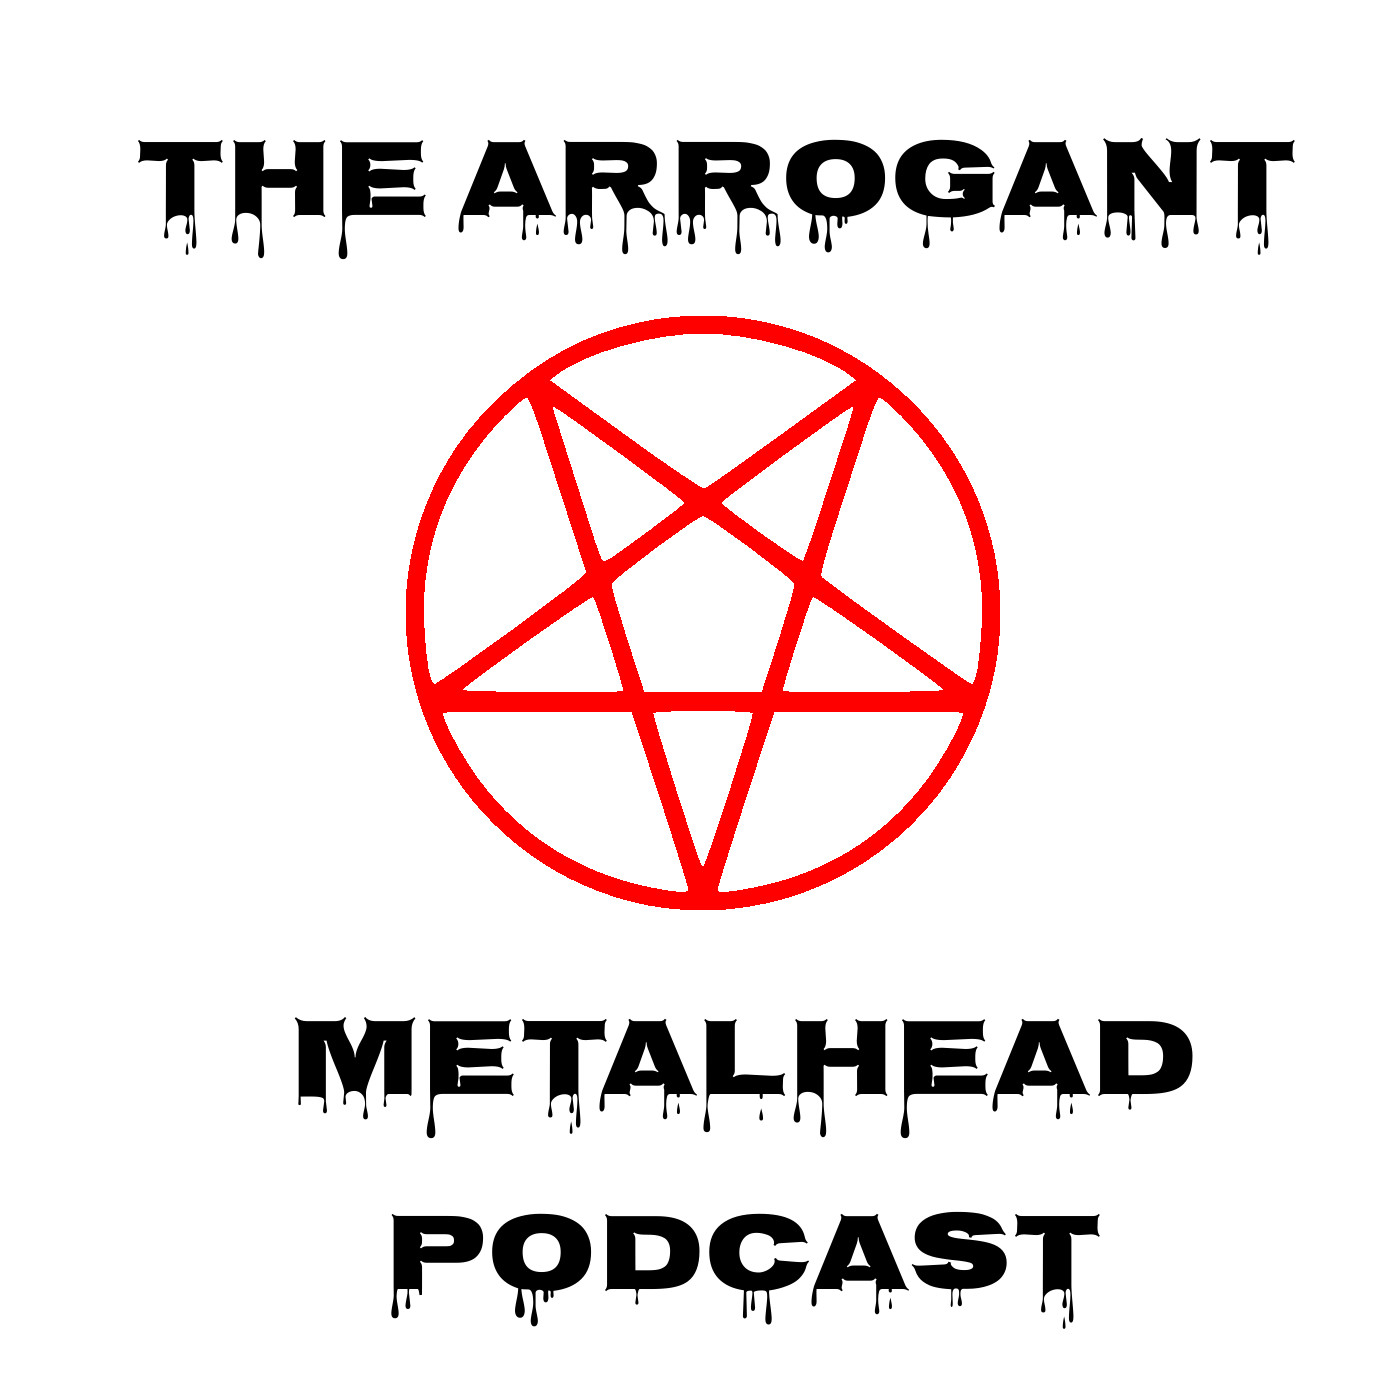 The Arrogant Metalhead Episode 11: Oh Christ, We're Back